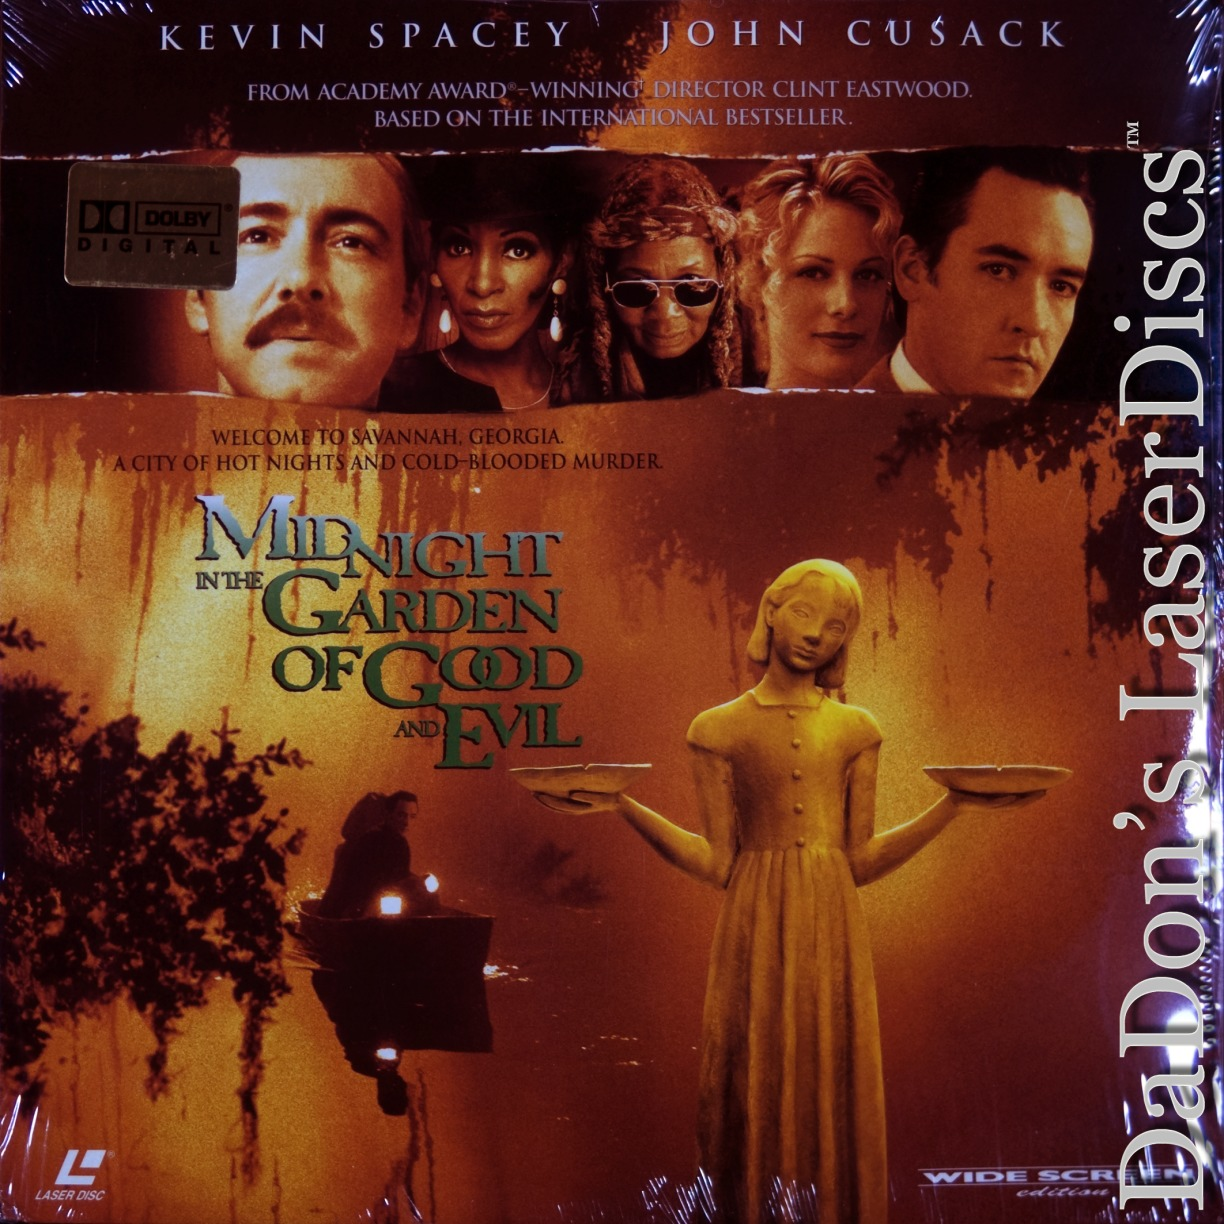 Midnight In The Garden Of Good And Laserdisc Rare Laserdiscs Ac 3 Dolby Digital